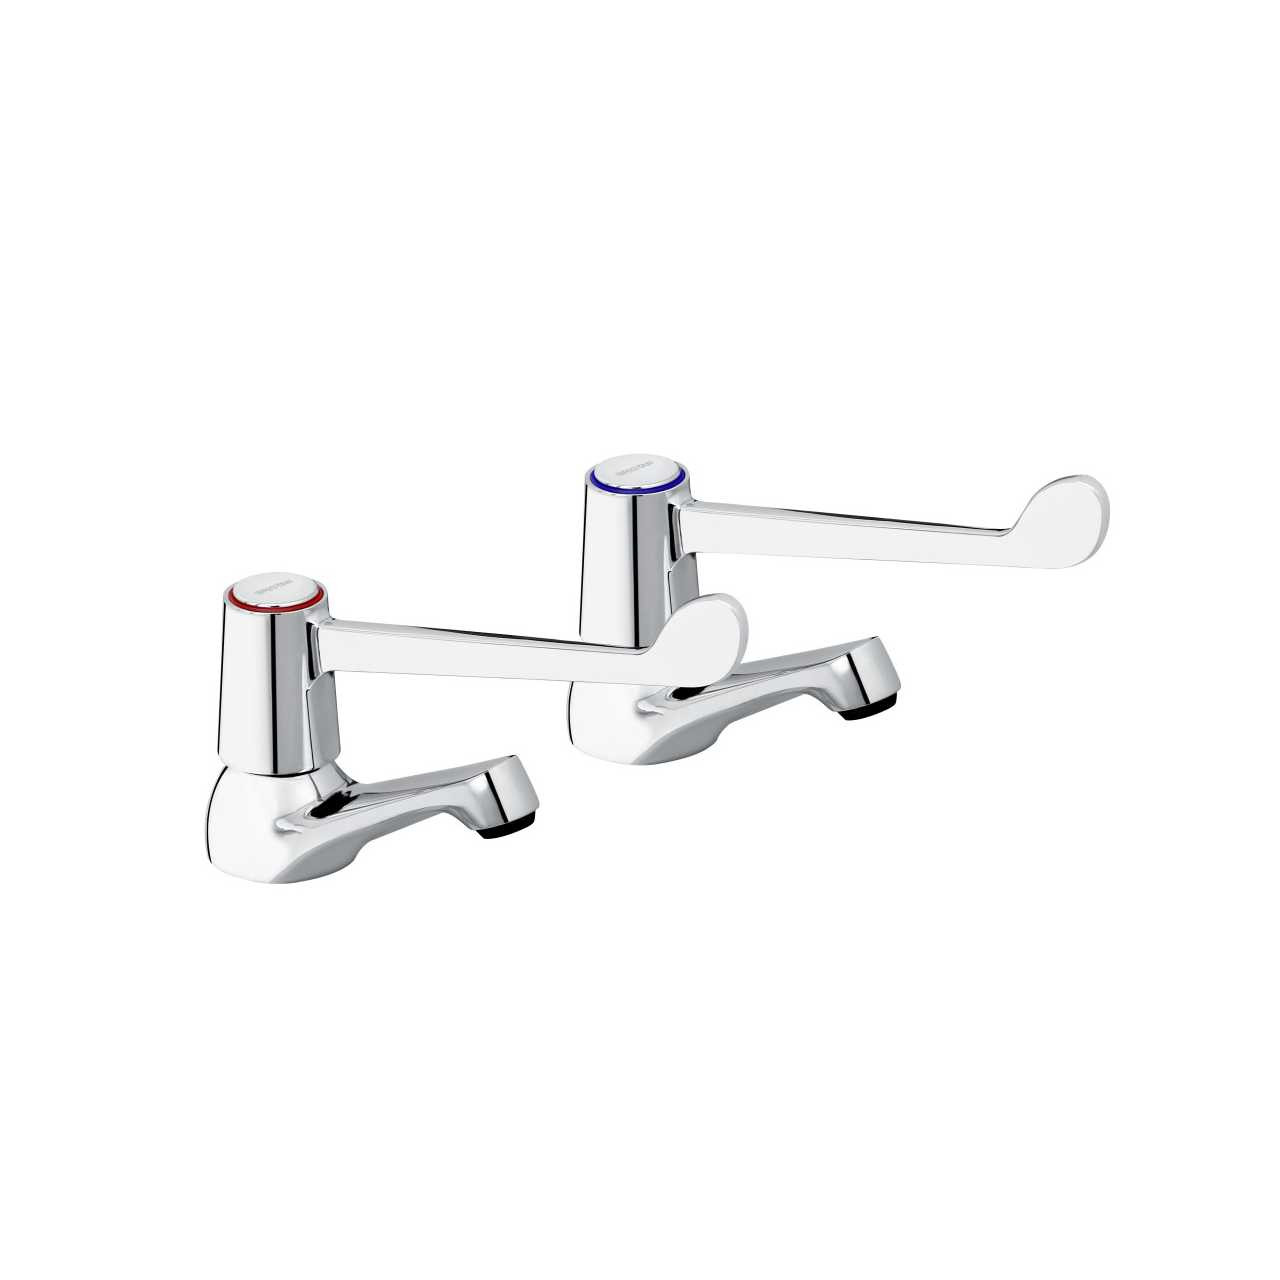 Bristan Value Lever Chrome Basin Taps with 6 Inch Levers and Ceramic Disc Valves - VAL-1/2-C-6-CD